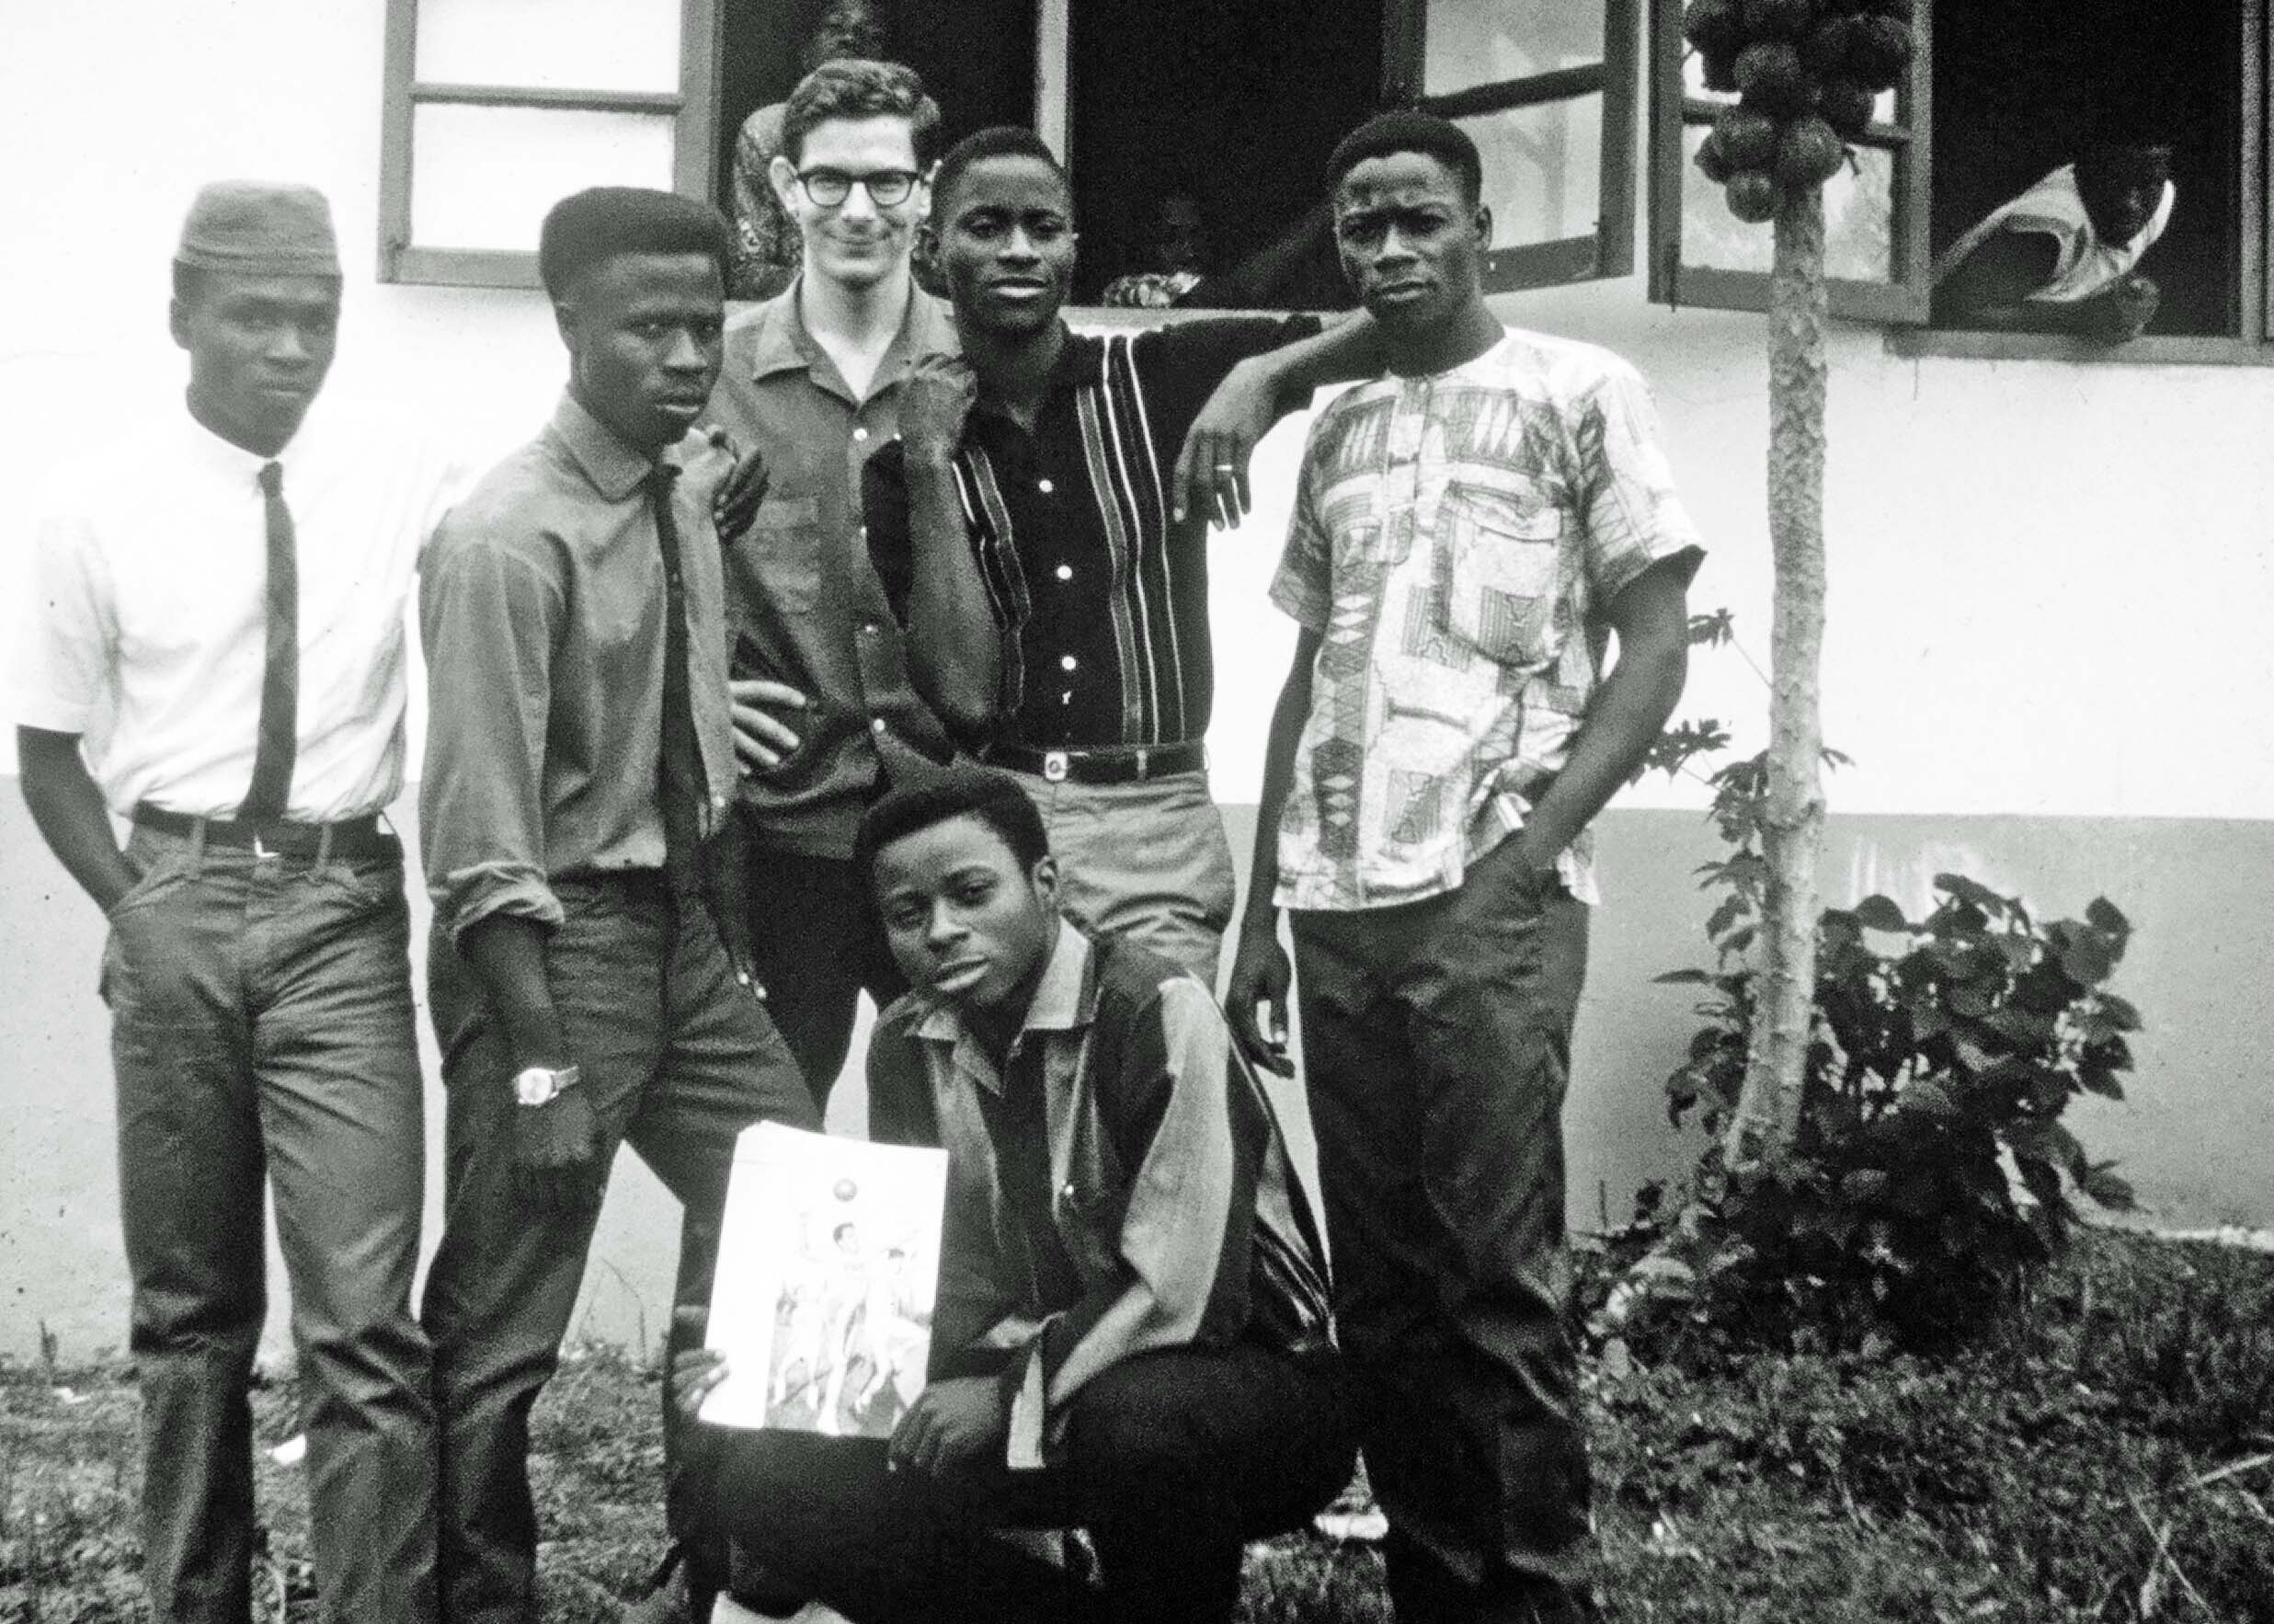 Hopefully todays young people in Liberia  will not face the grim future my students shown here from 1967 faced.